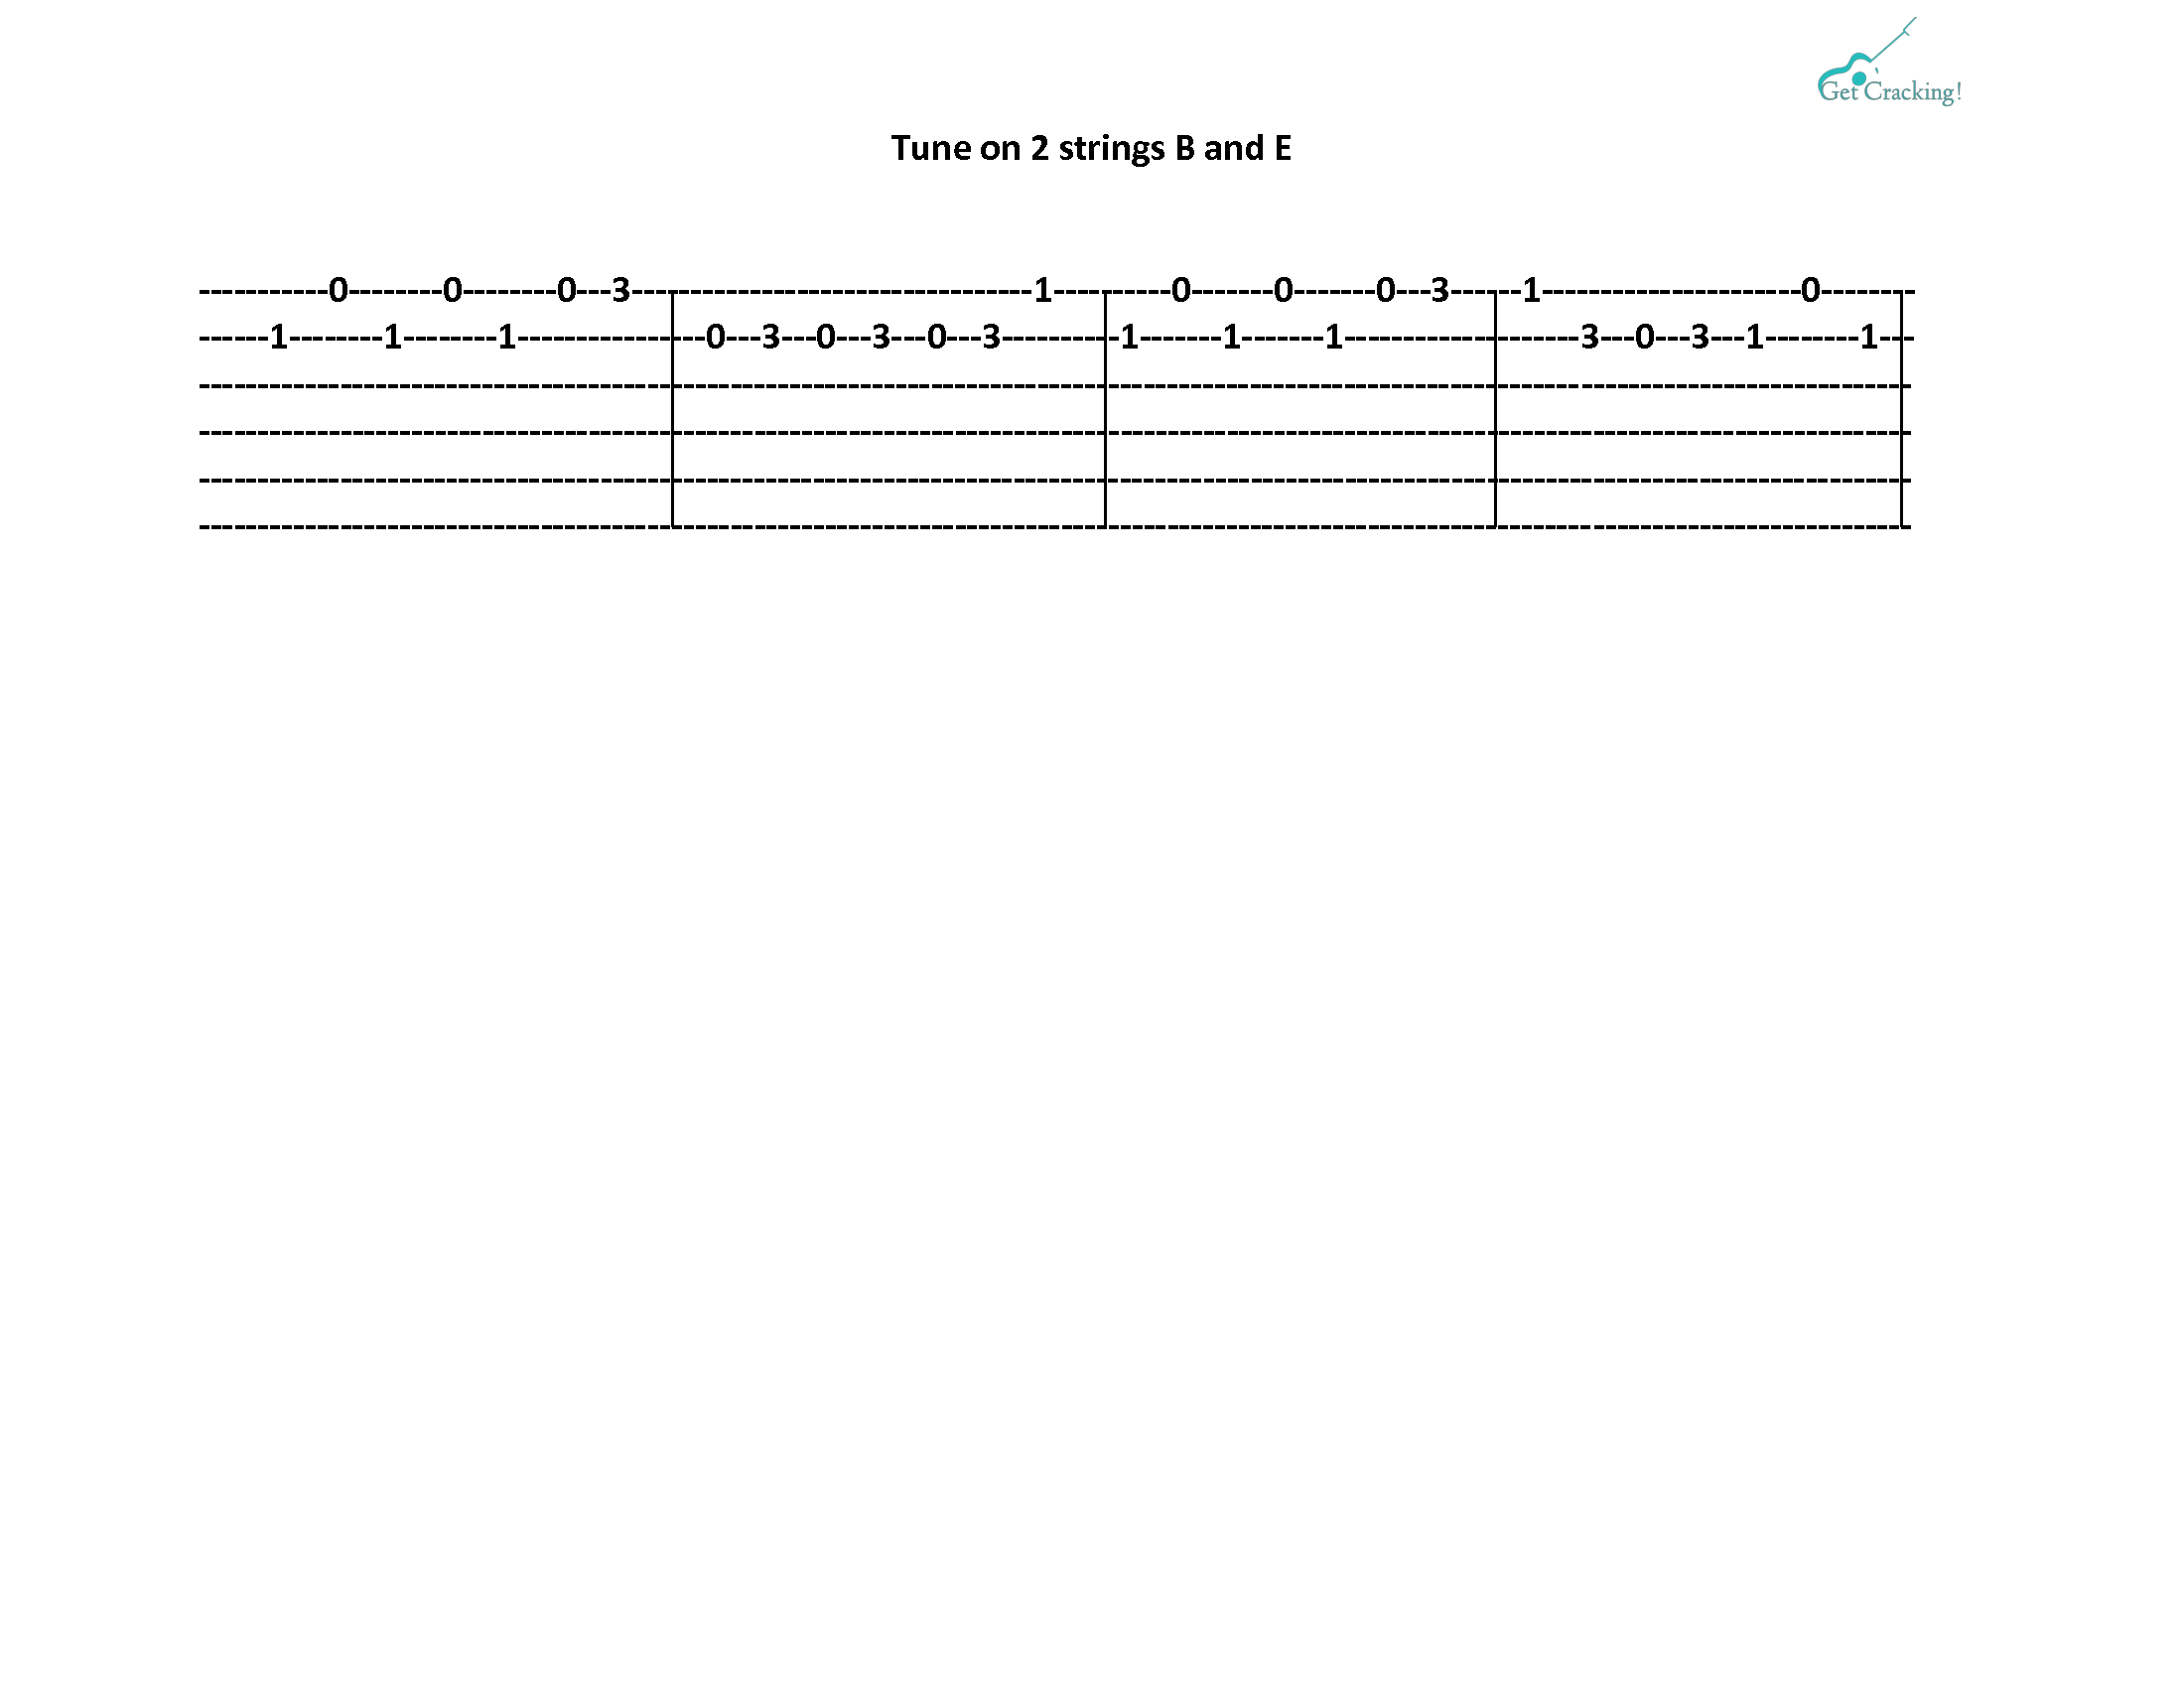 b tabs tune on 2 strings b and e